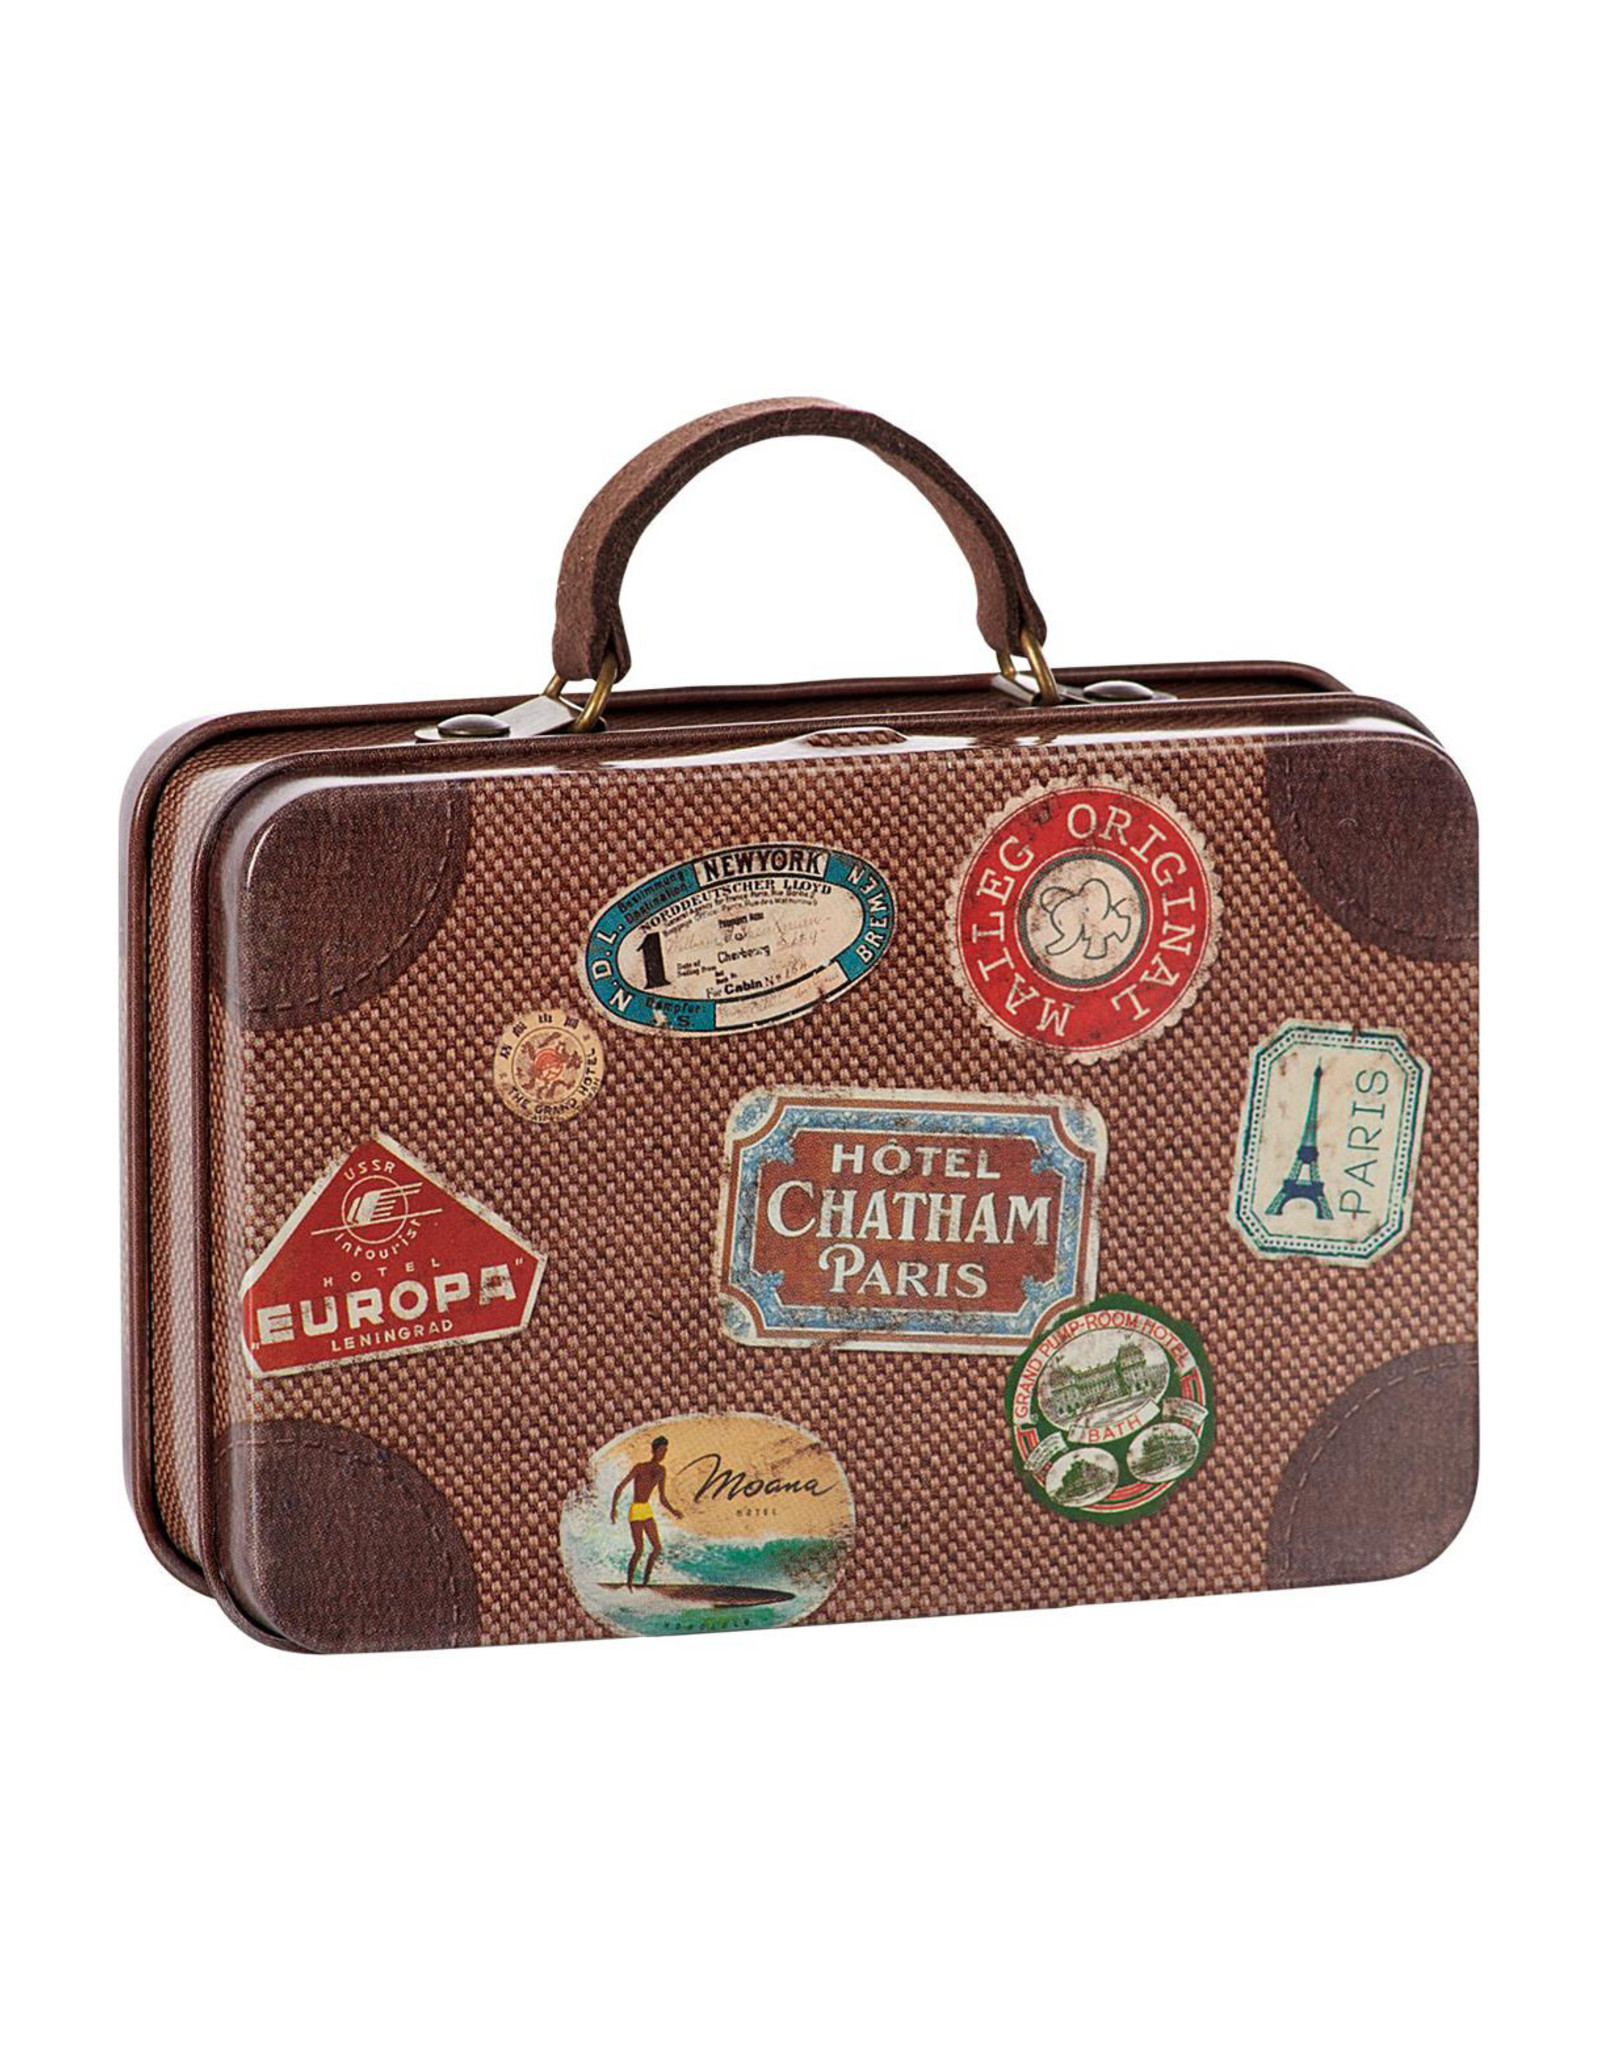 Maileg Metal Suitcase - Brown Well-Travelled